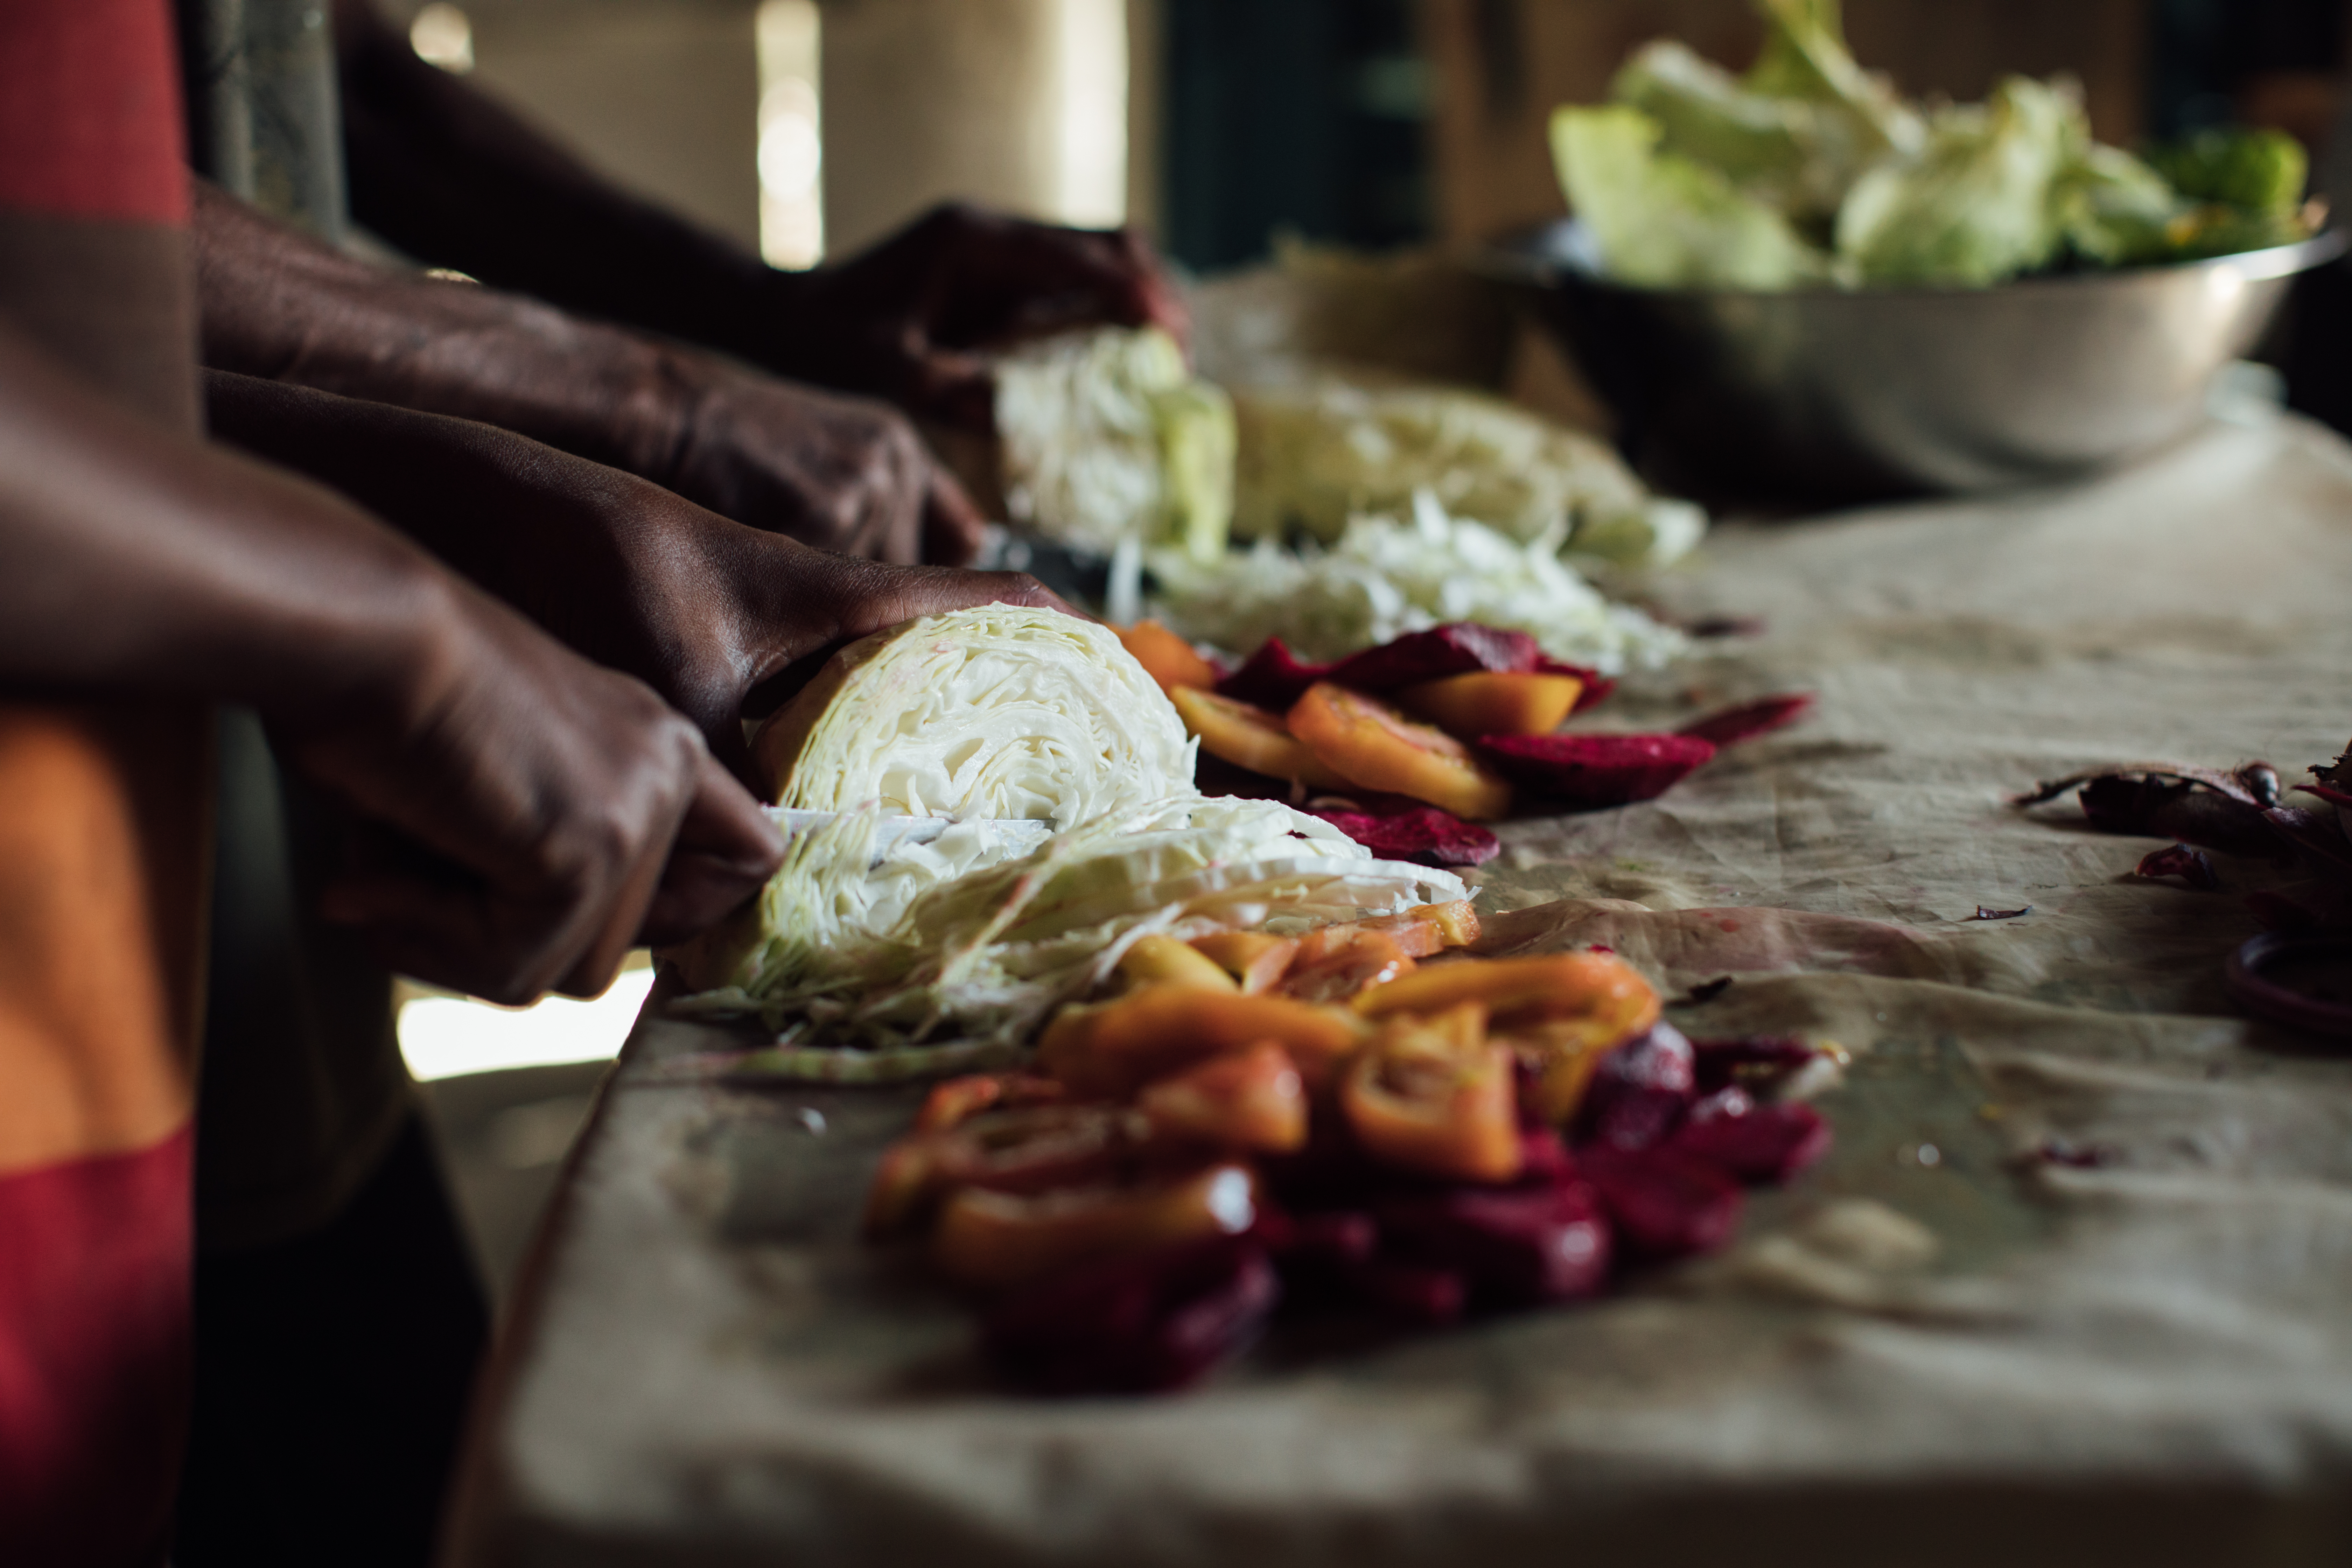 People chopping veggies and preparing food for cooking.